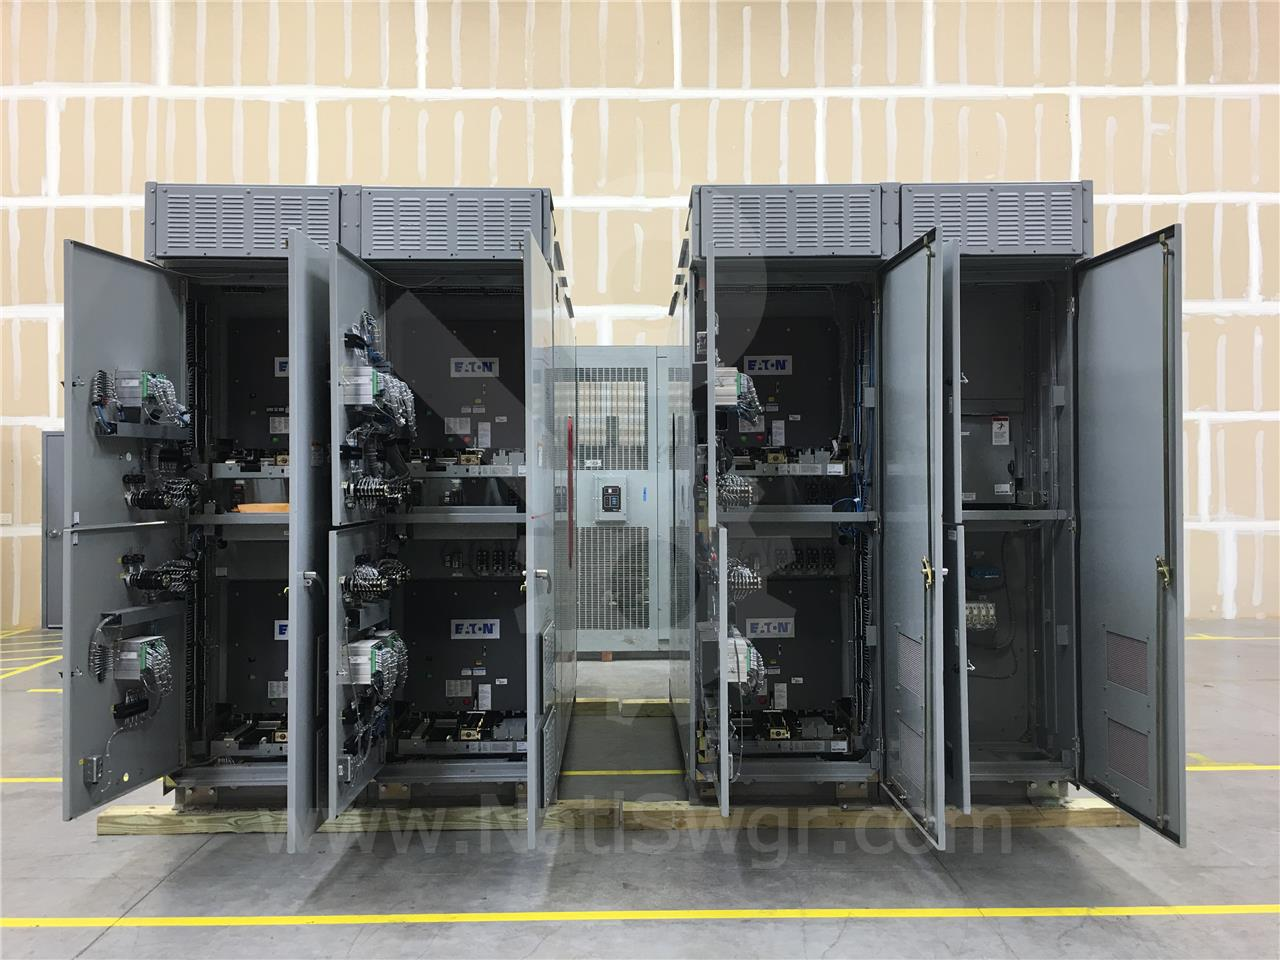 Westinghouse / Cutler Hammer 5KV WH EATON VCP-W OUTDOOR SWITCHGEAR LINEUP 1200A 350MVA - UNUSED SURPLUS